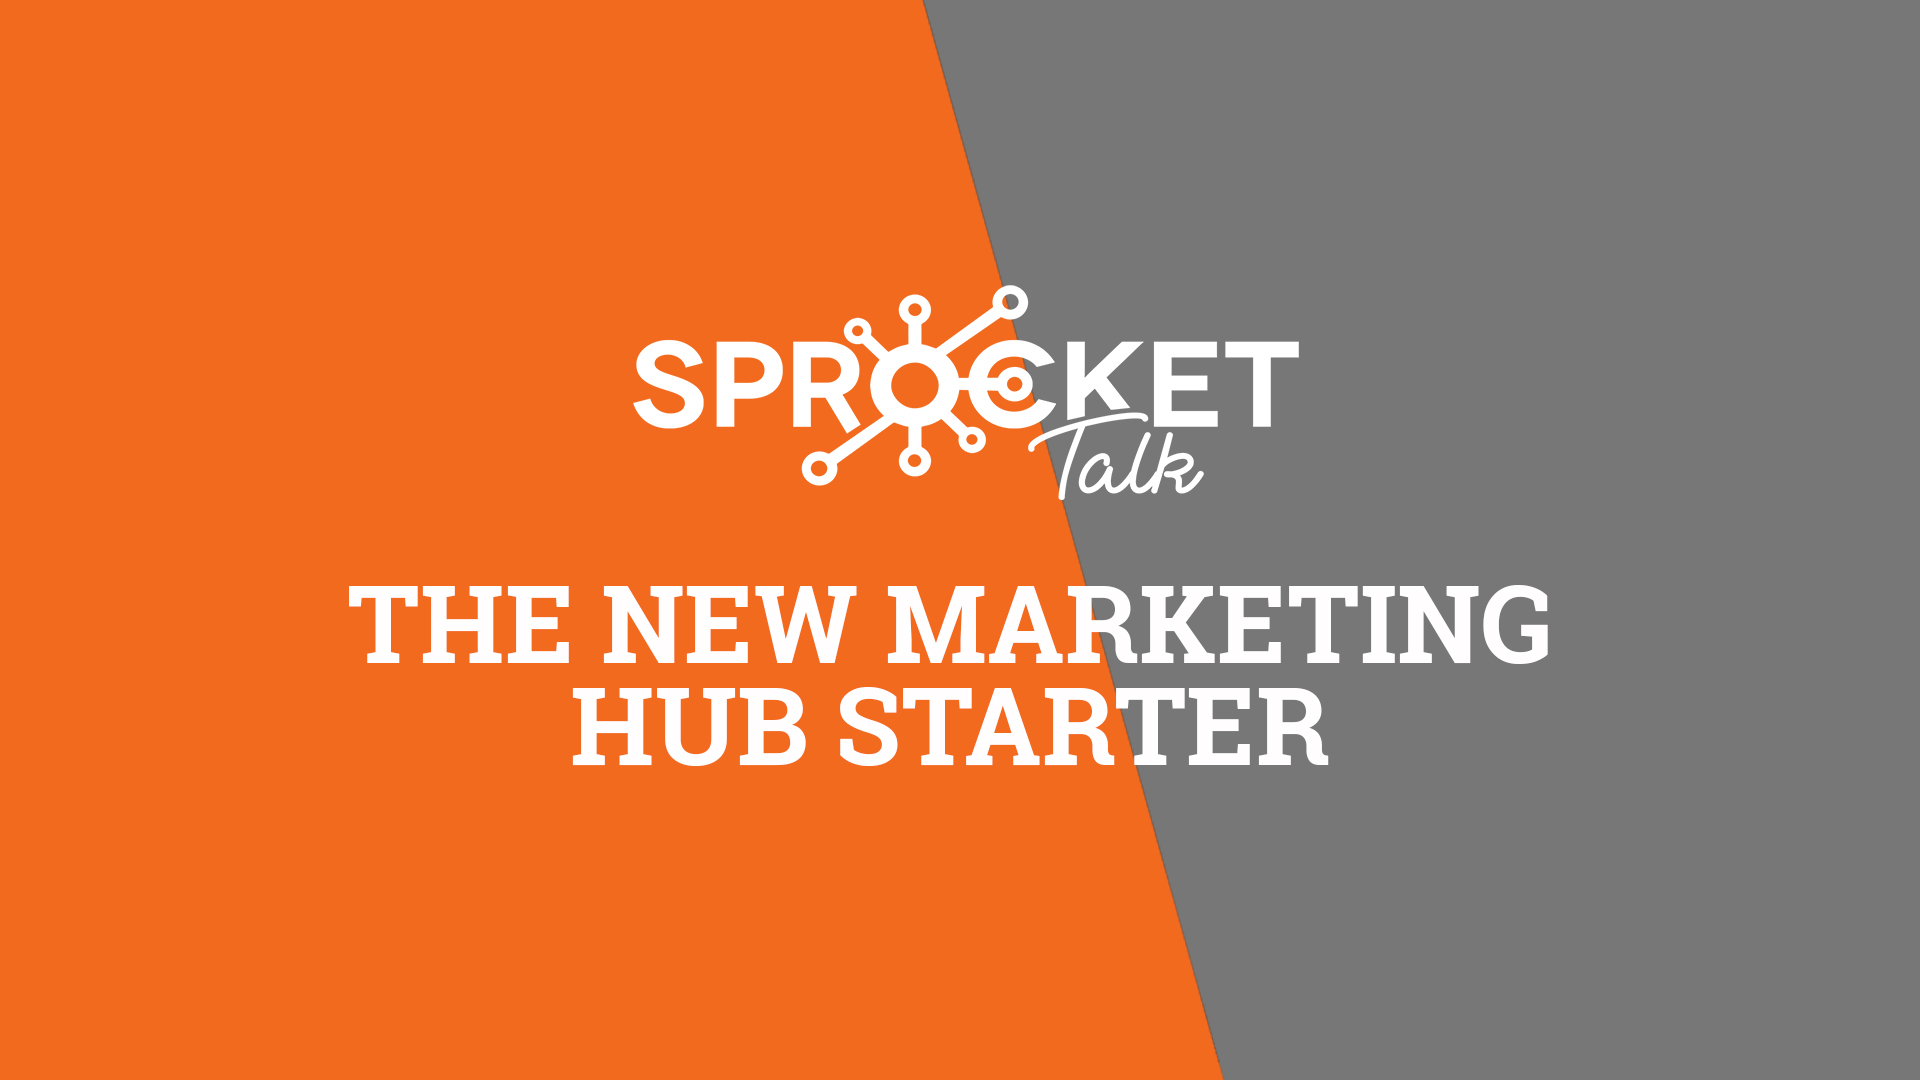 The New Marketing Hub Starter